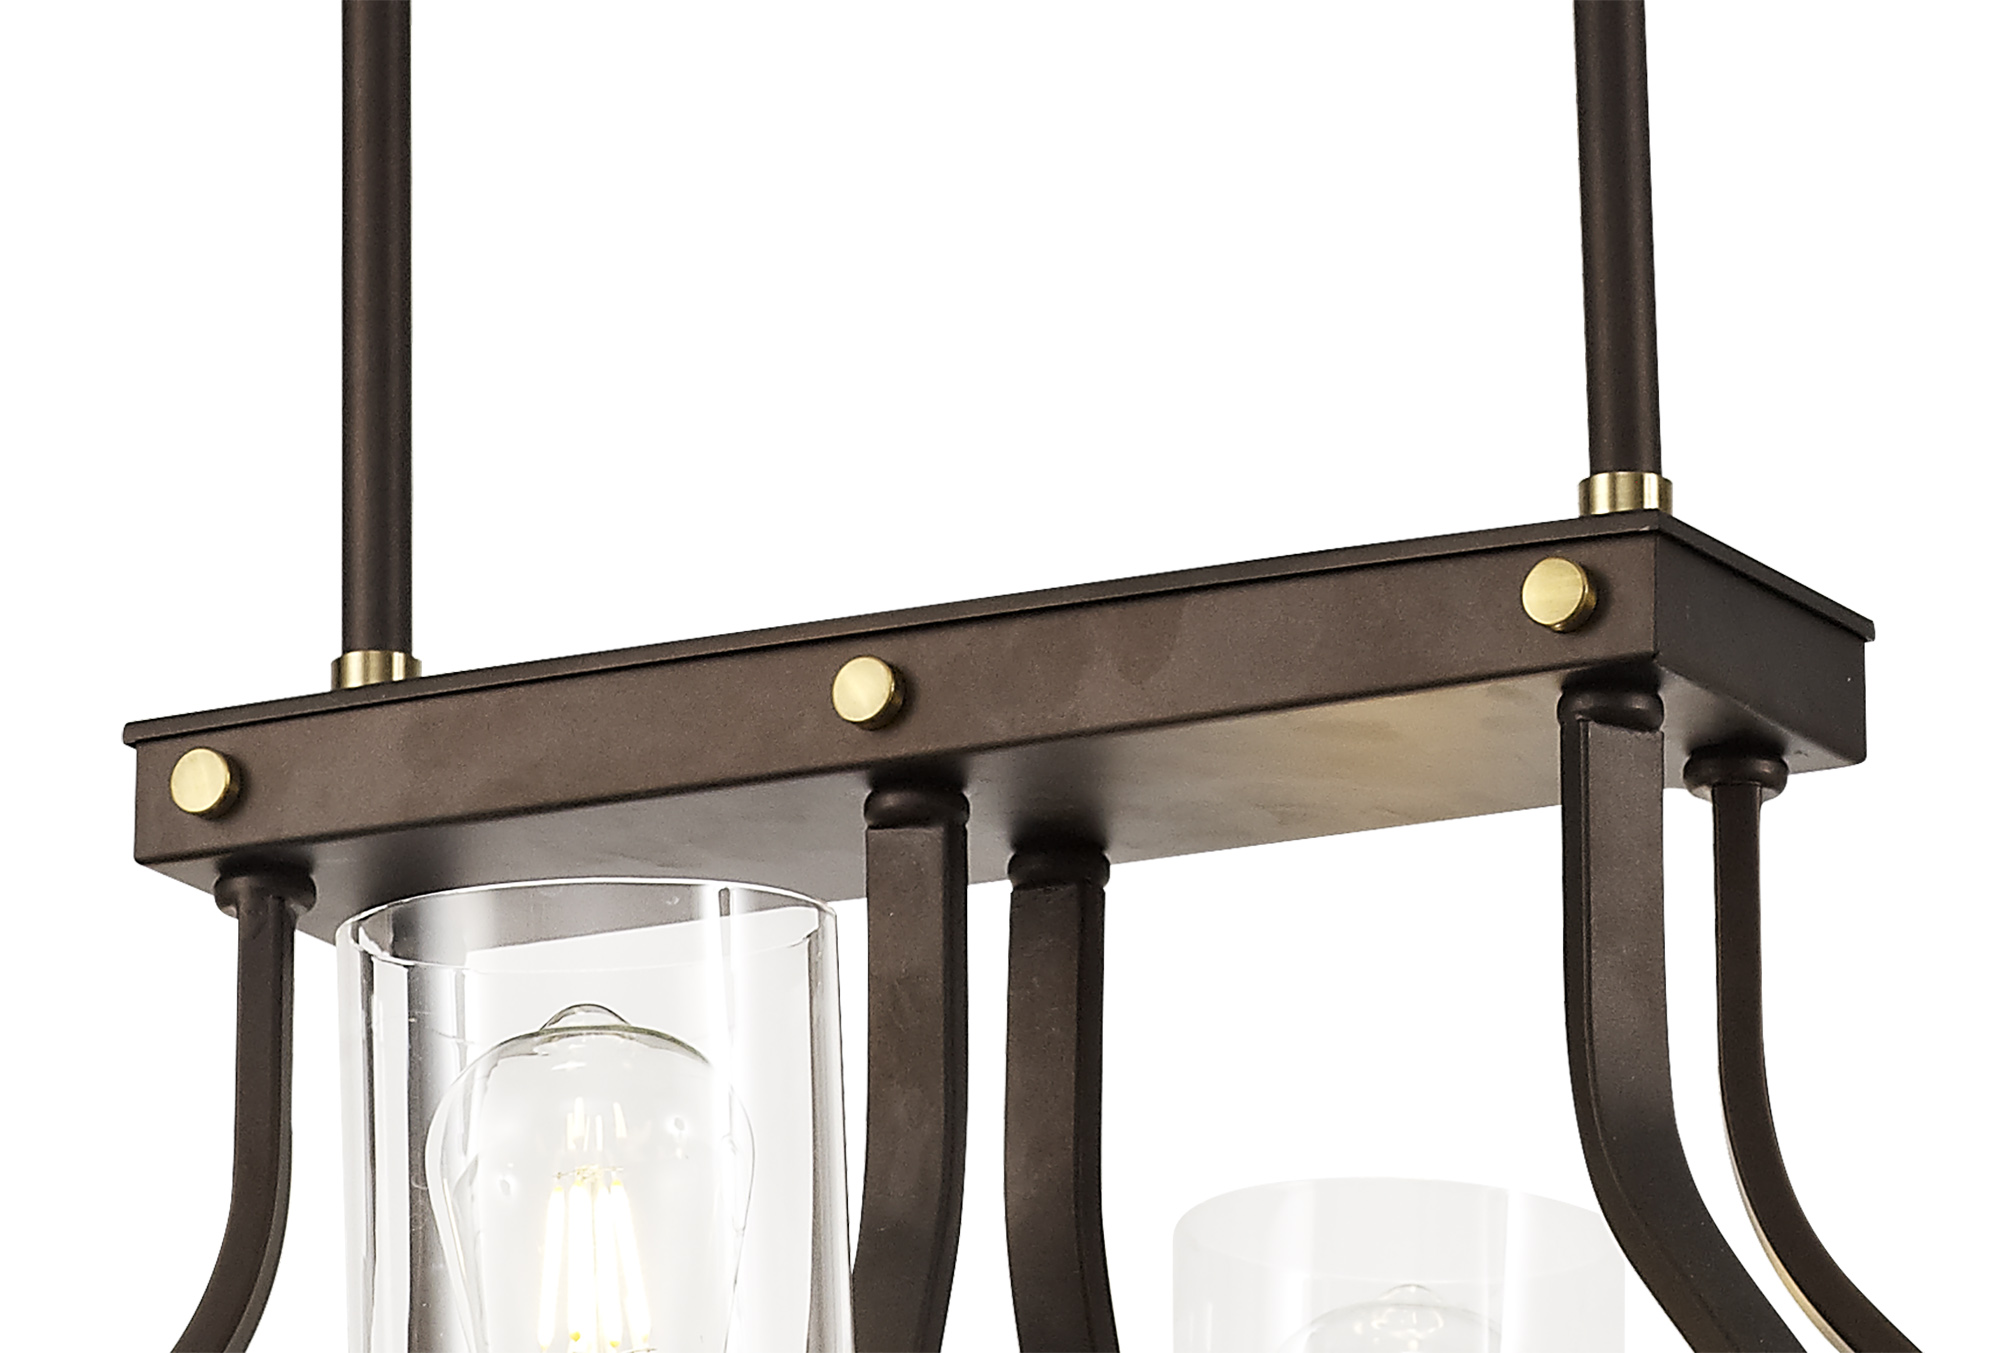 Linear Pendant 6 Light E27, Brown Oxide/Bronze With Clear Glass Shades